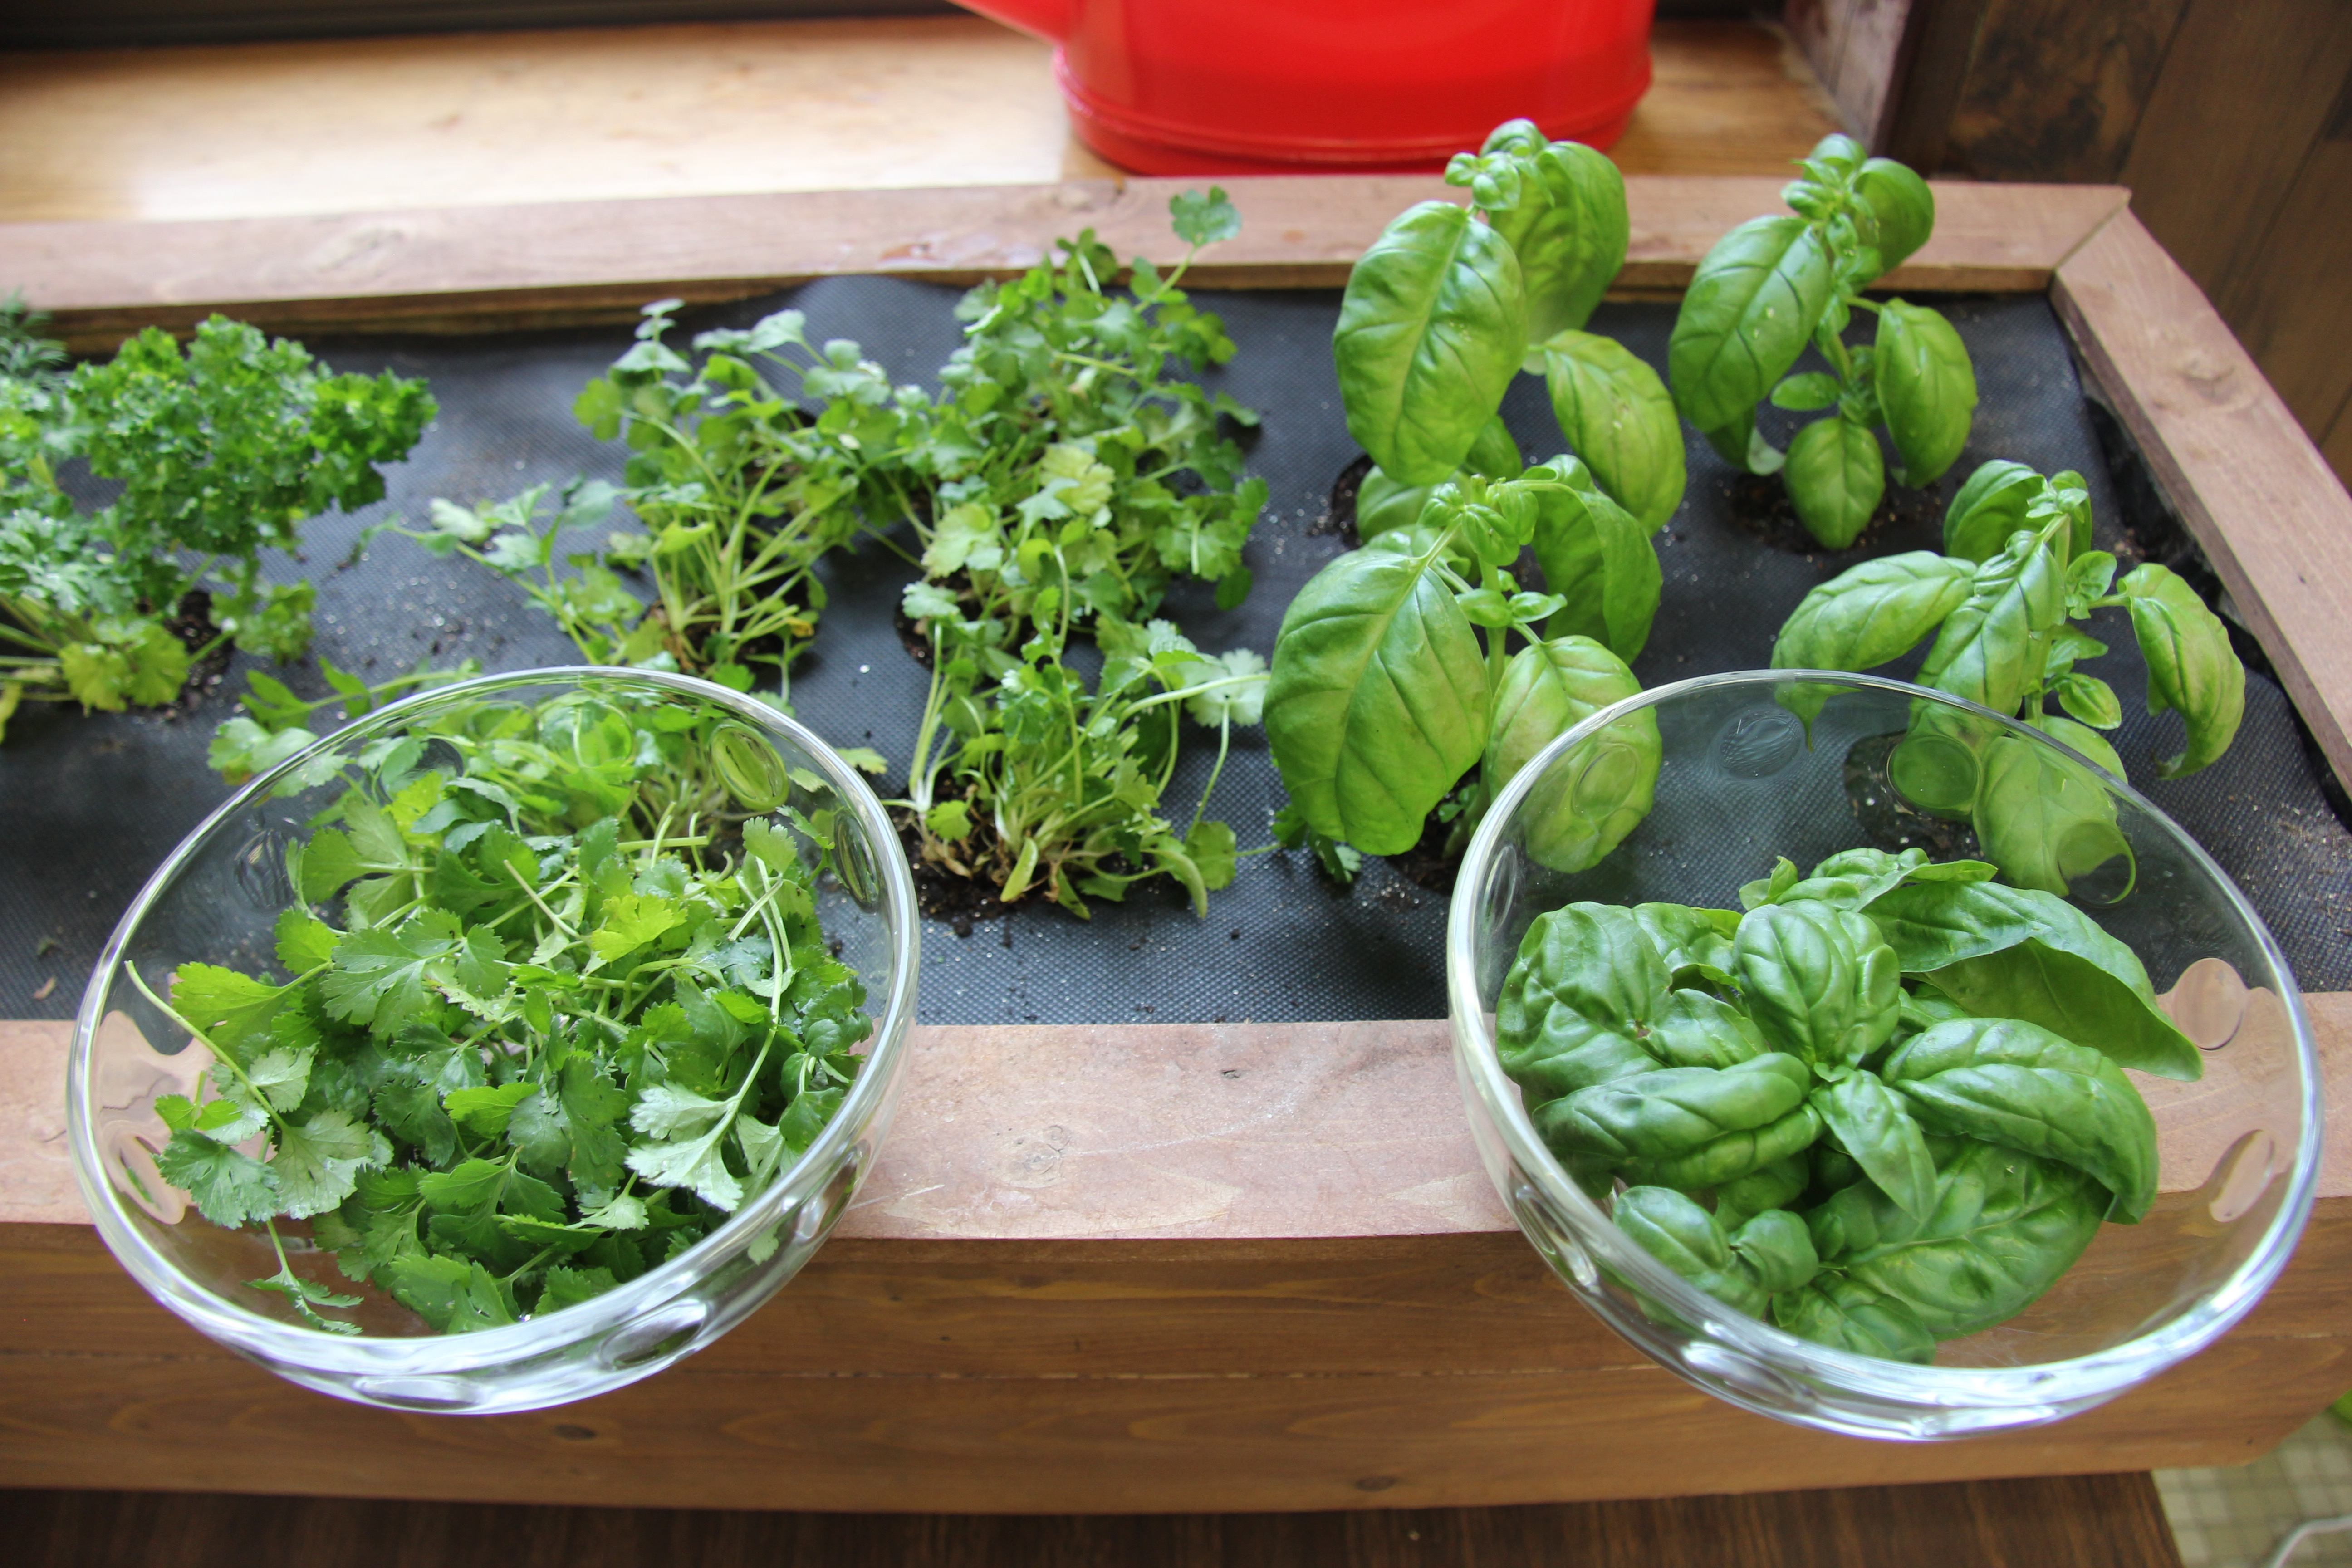 Urban gardening: Tips and products for the space-starved